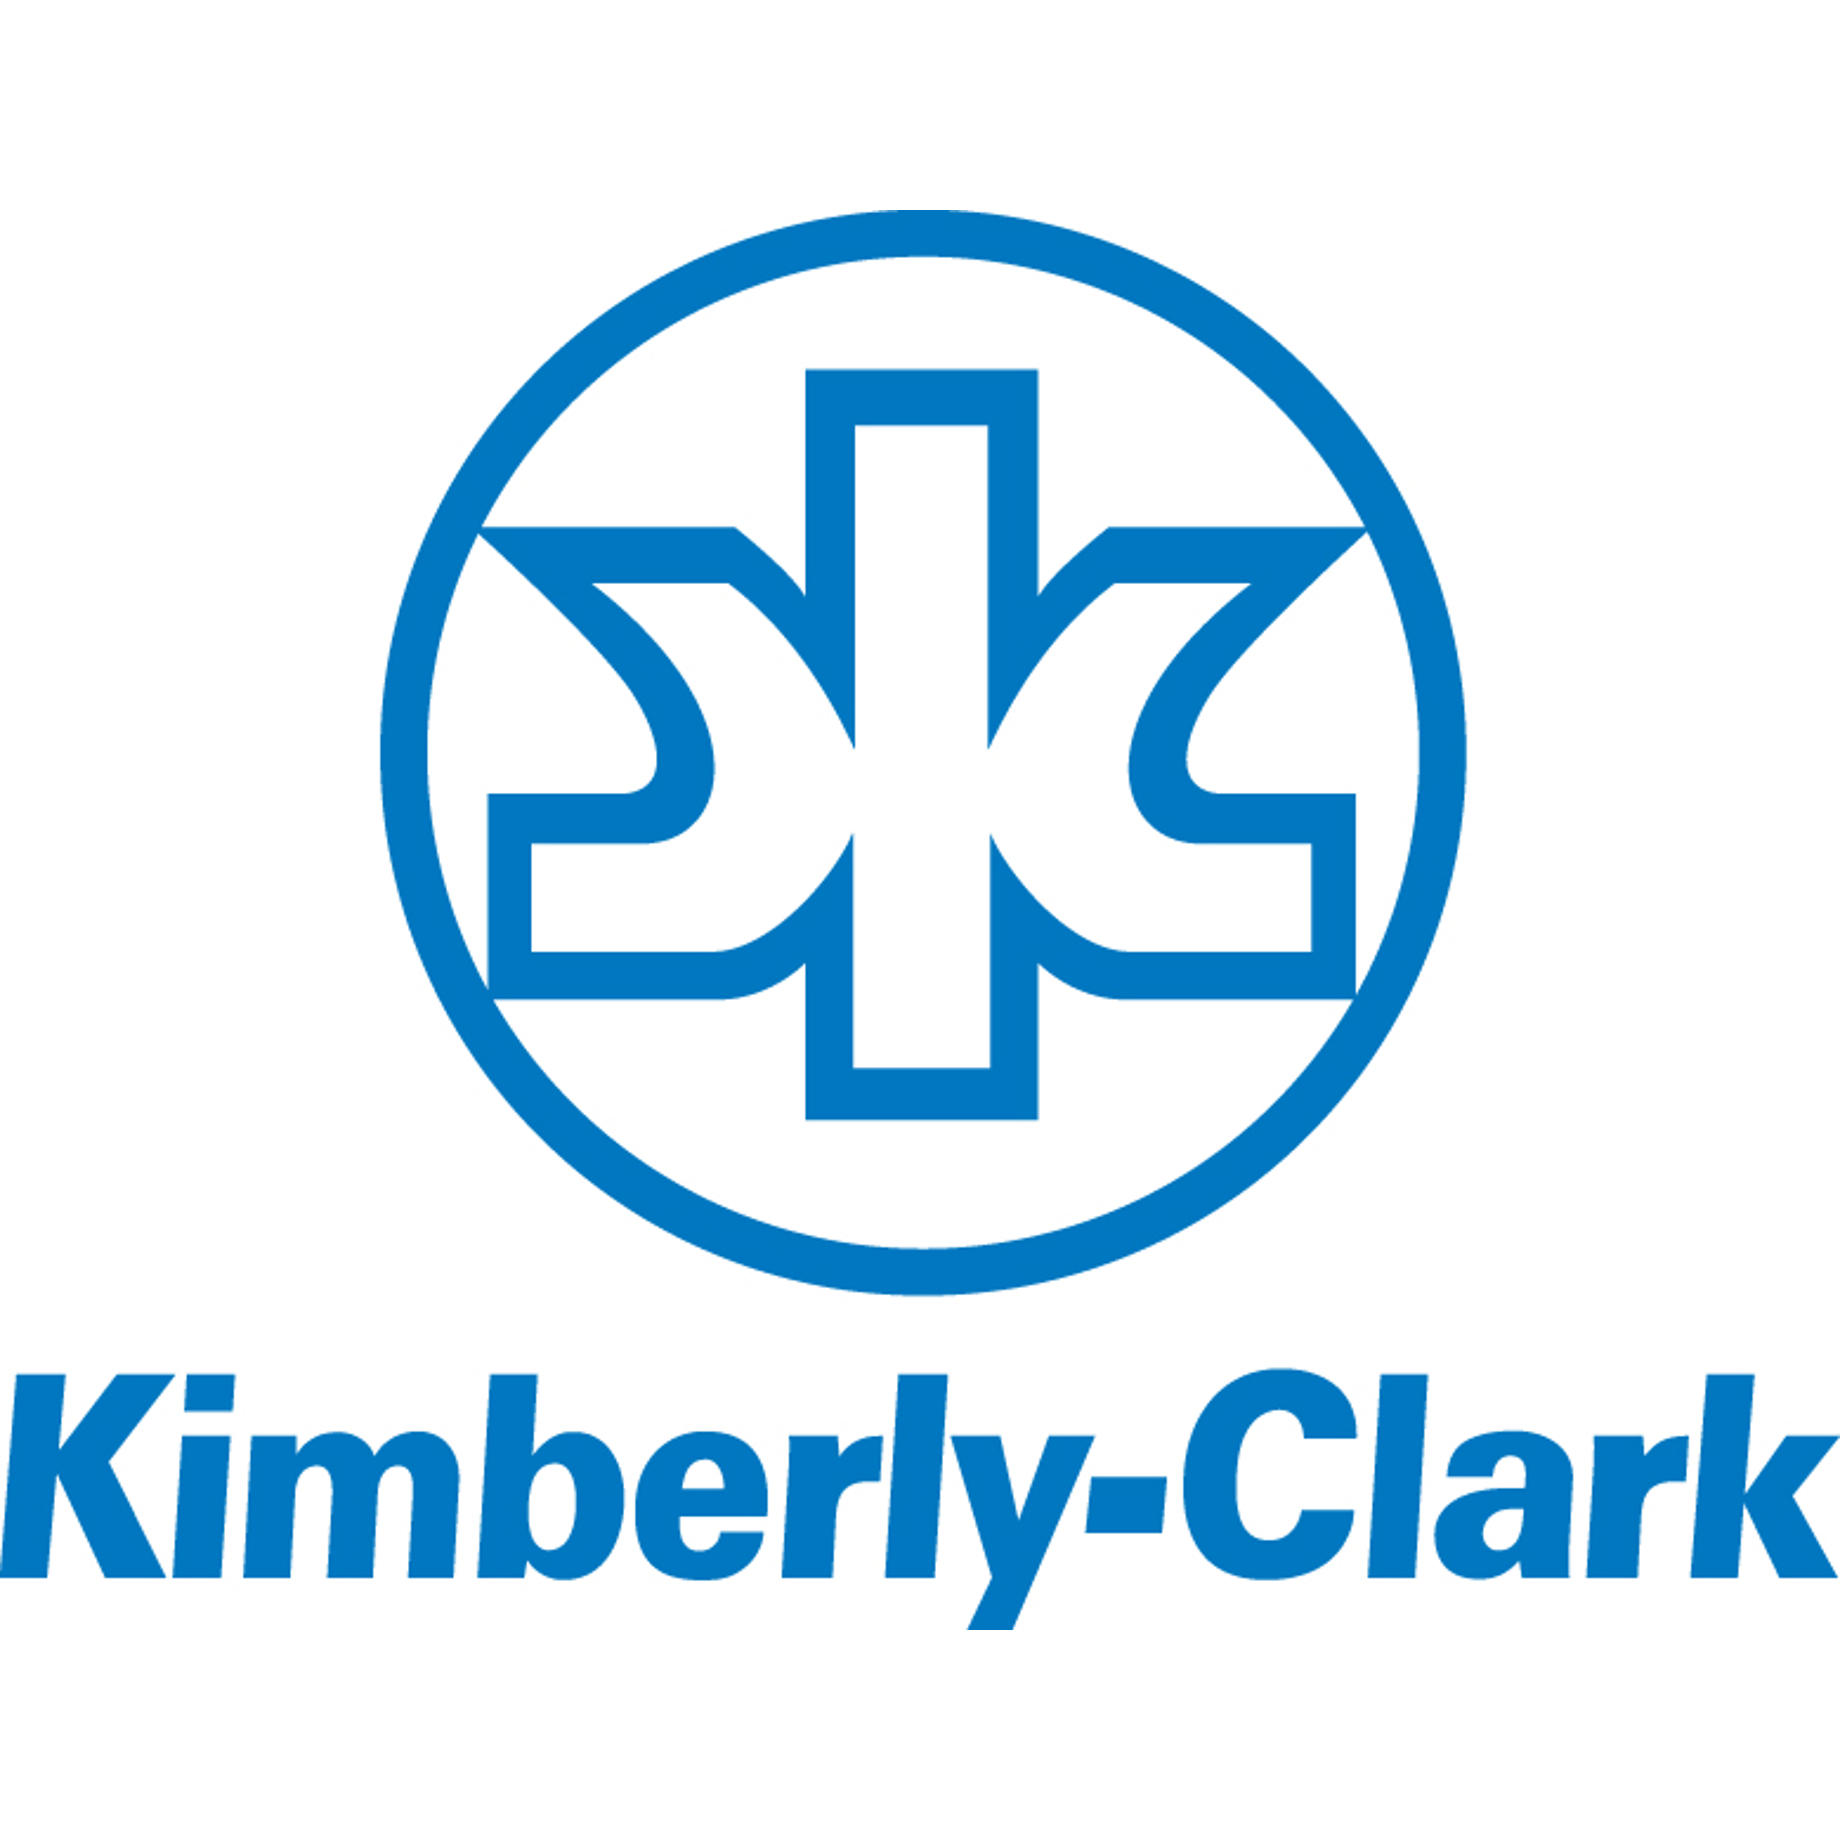 Kimberly-Clark Corp in Tissue and Hygiene